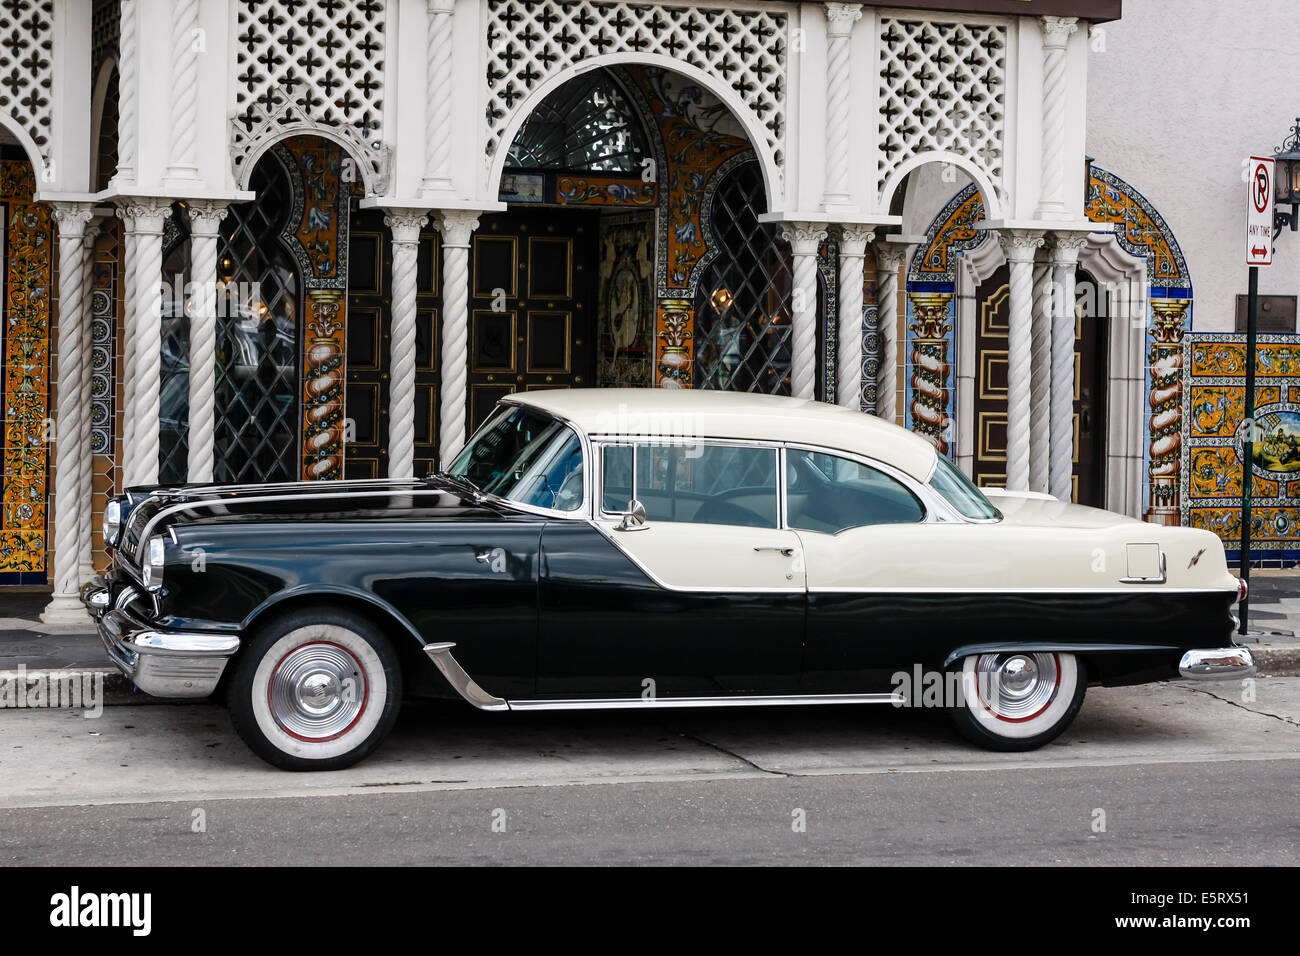 1950s Pontiac in downtown Ybor City Tampa FL Stock Photo: 72440173 ...